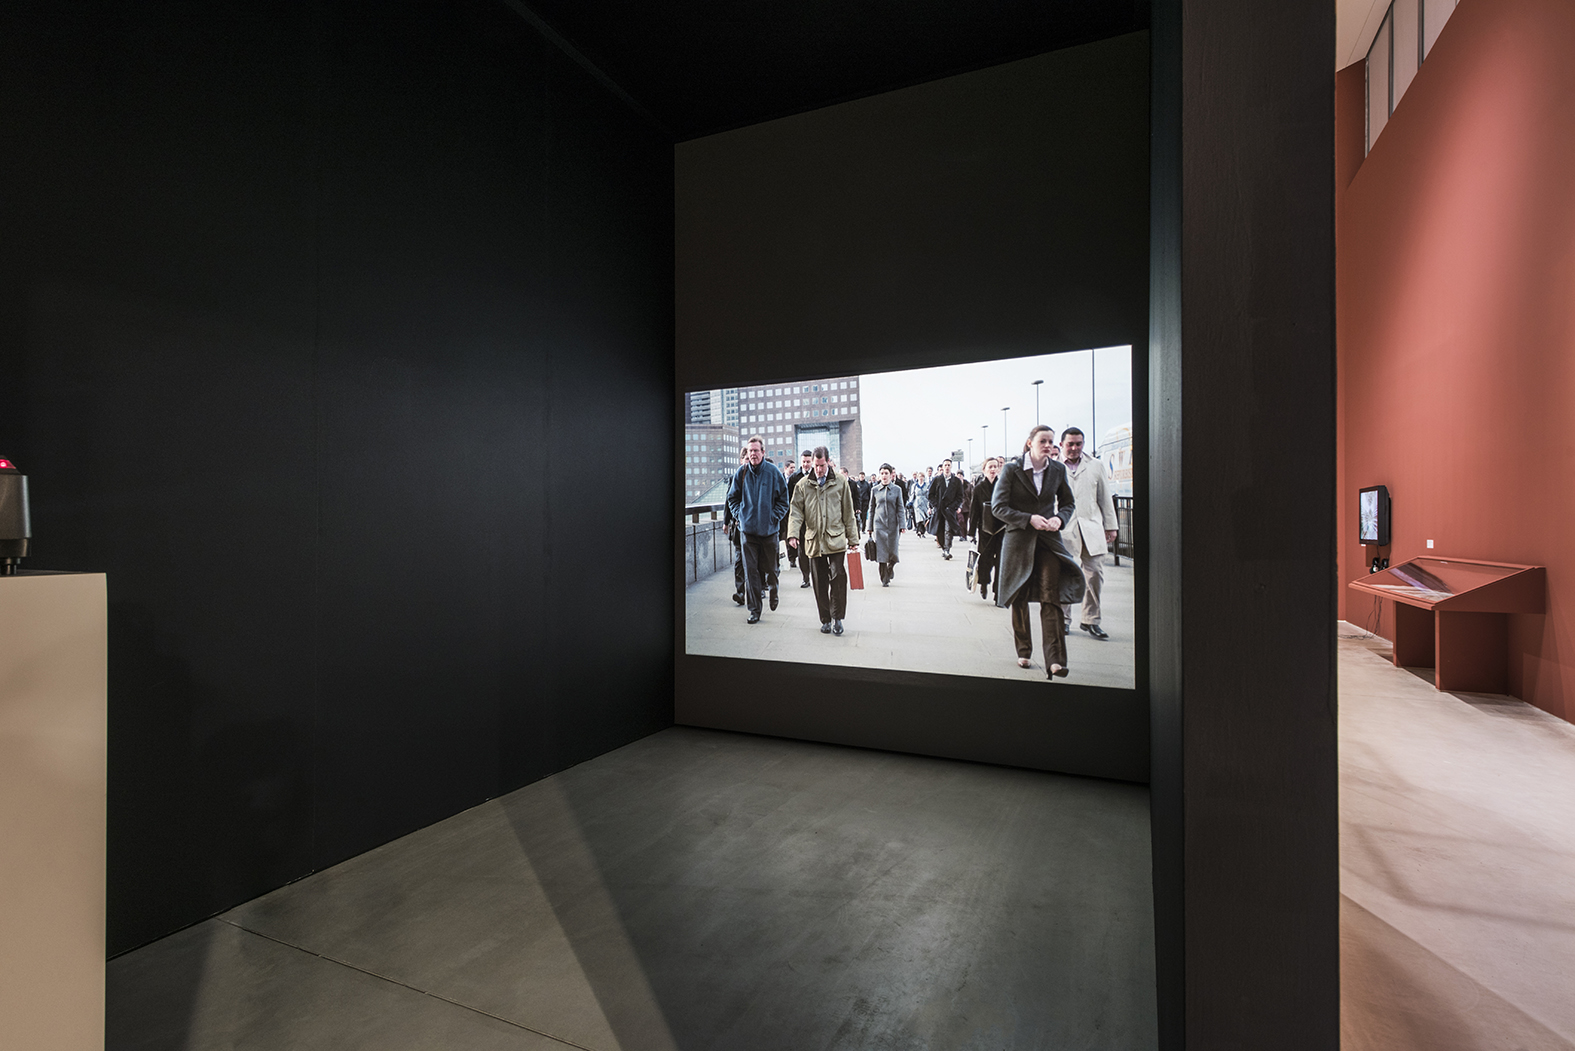 'Lines Made by Walking, as installed at Turner Contemporary, Margate, 2018